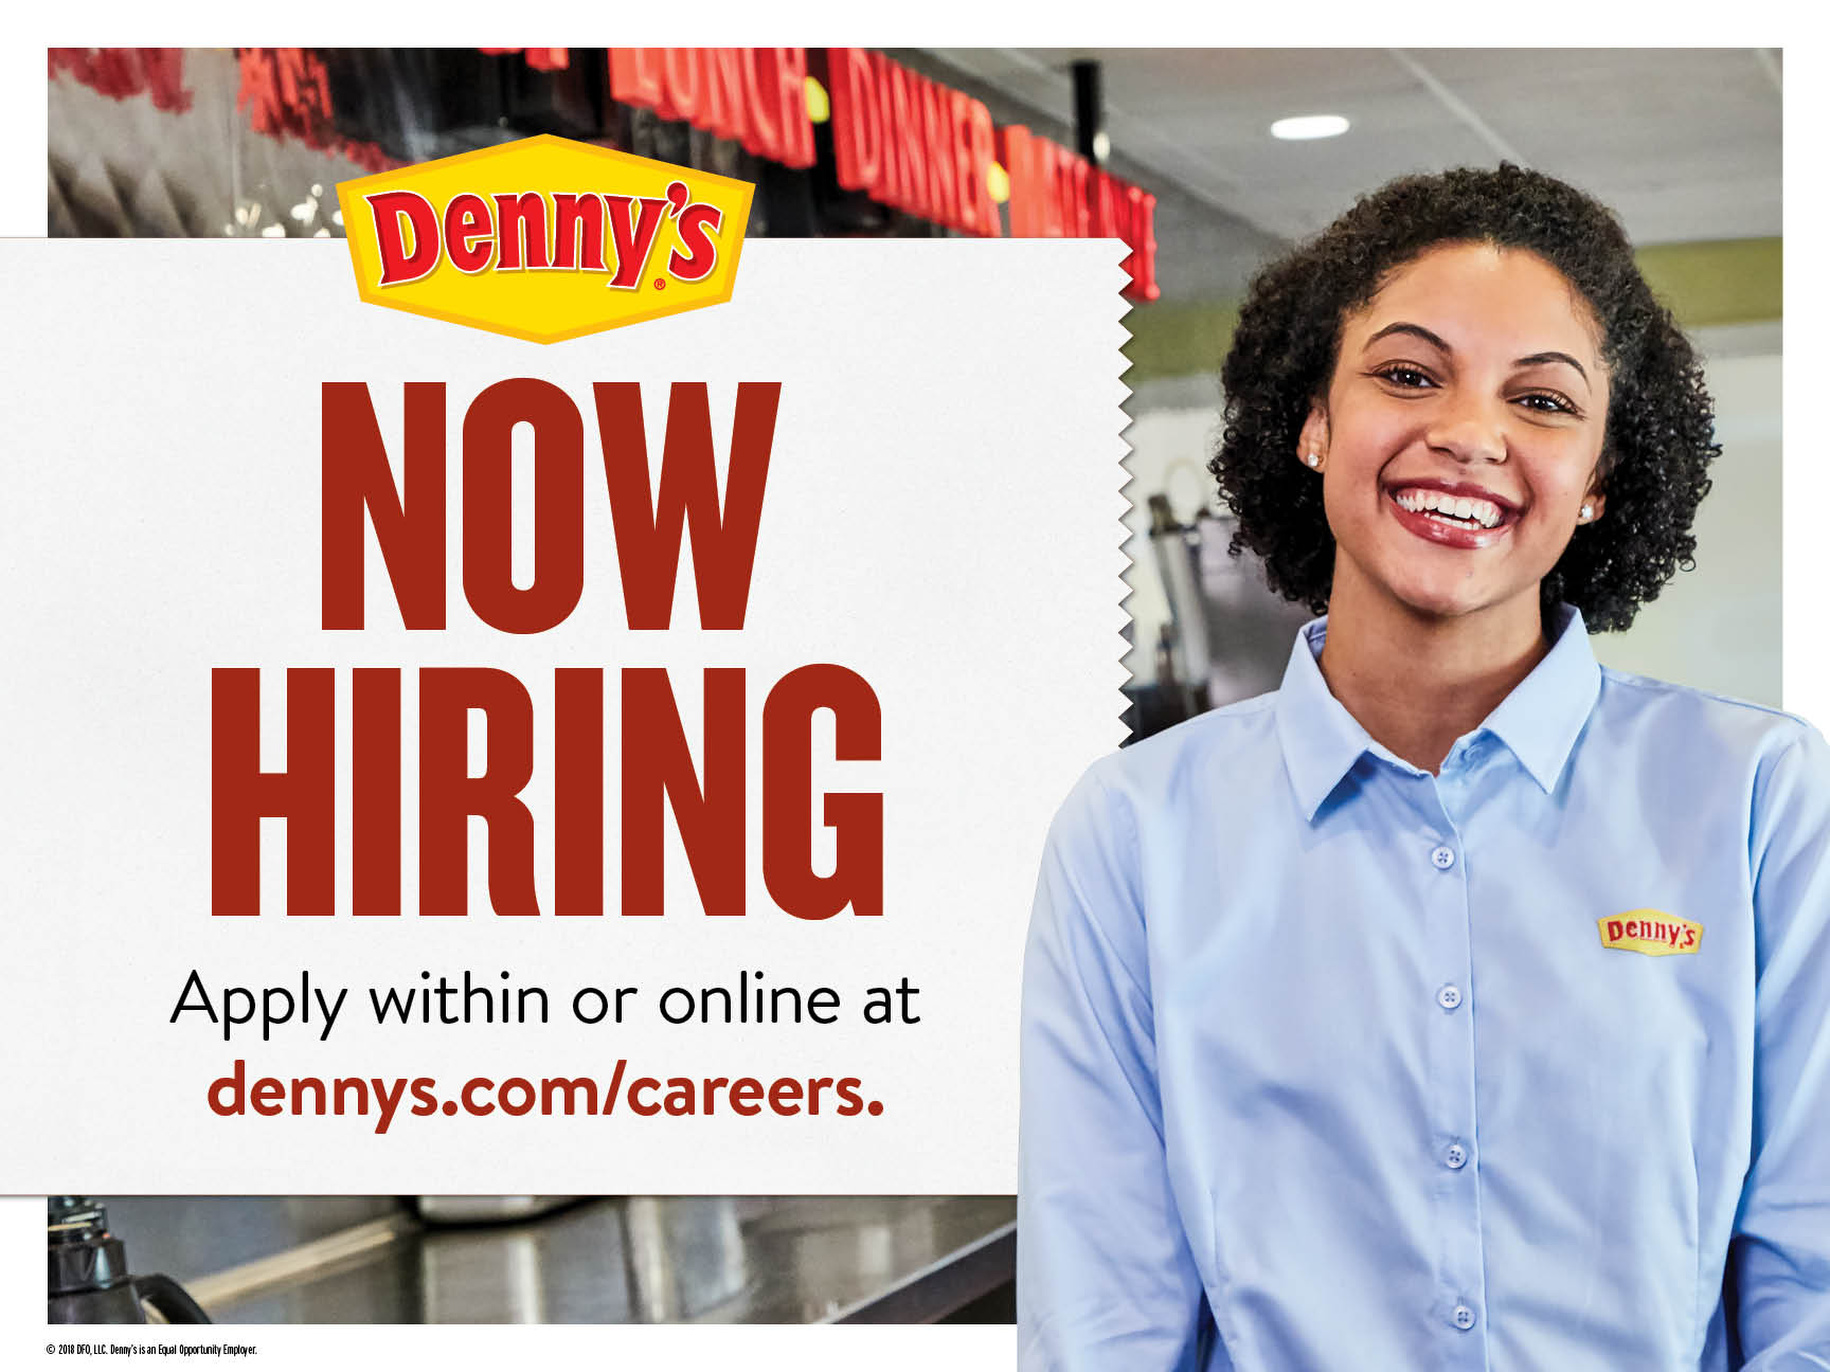 Dennys_Now_Hiring.JPG